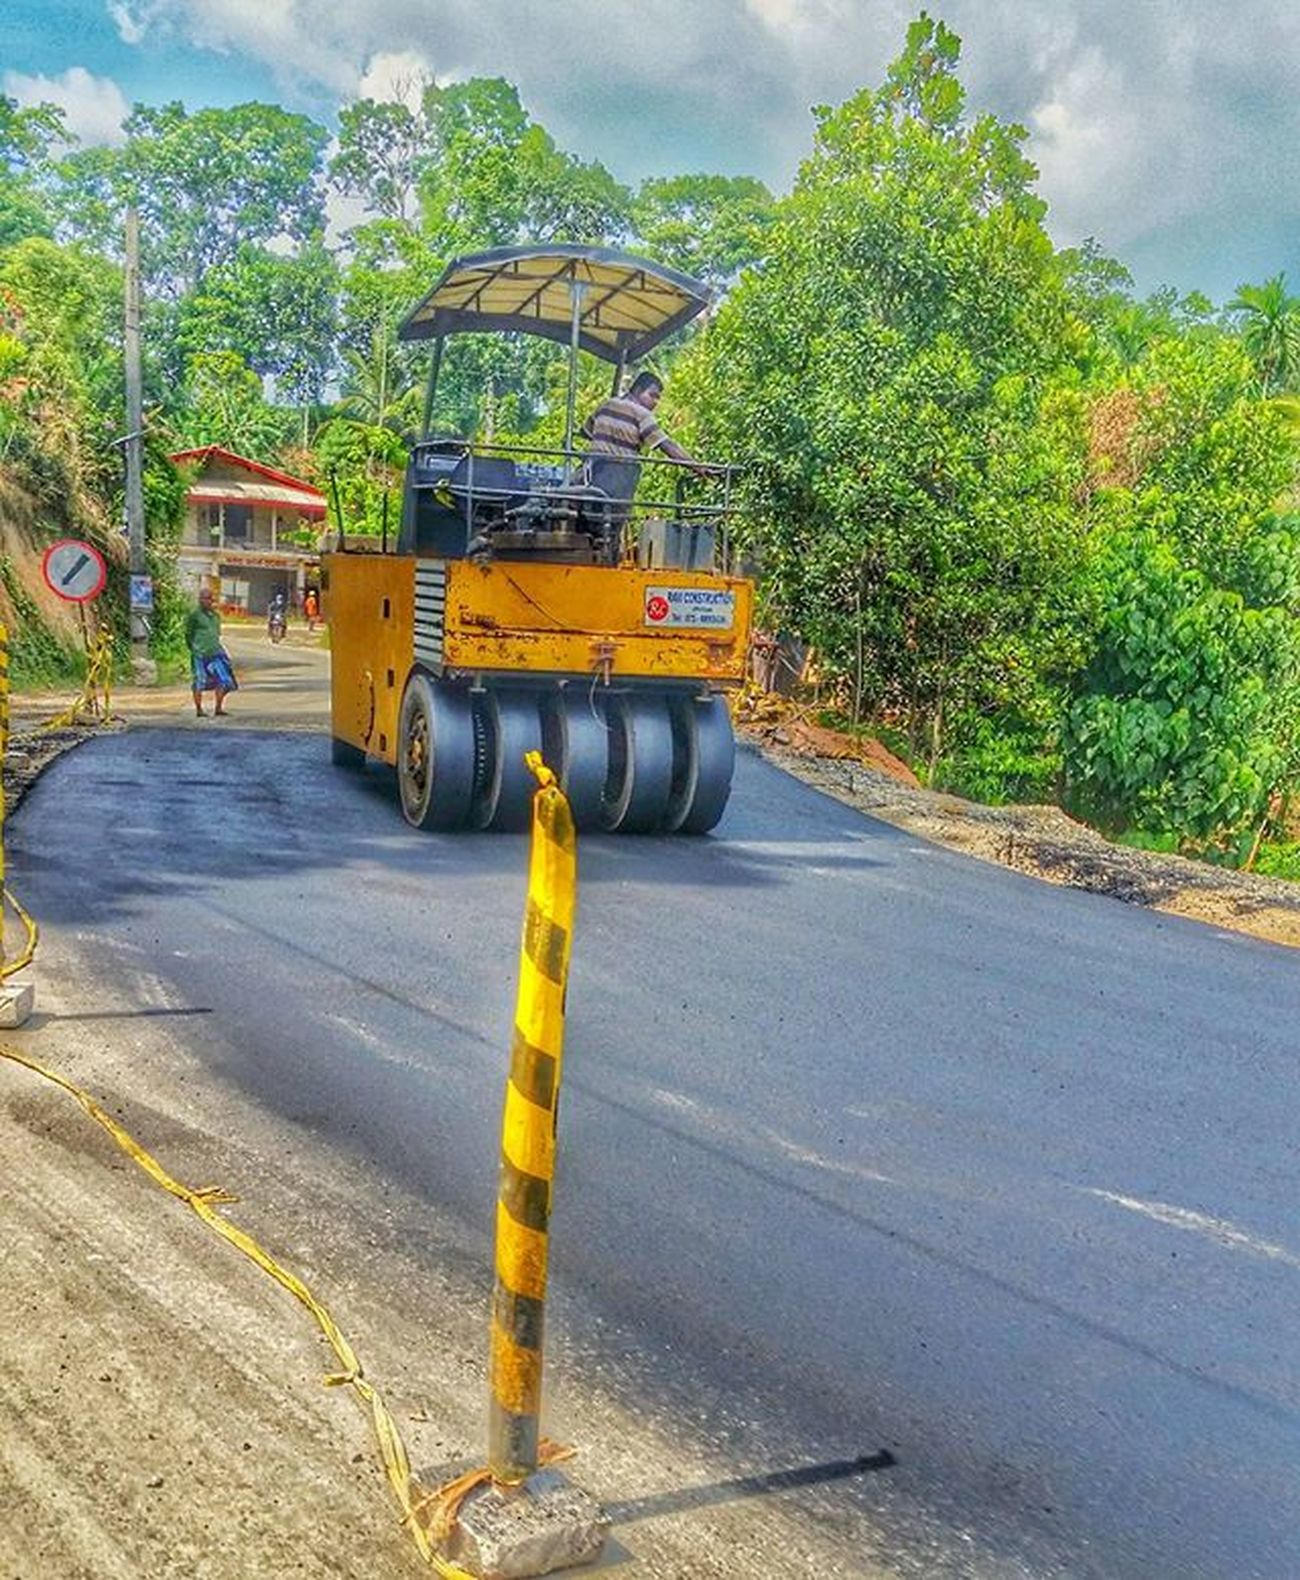 Construction Randomcapture Tarroad Roadrollers Kottawa Tagsforlikes Likeforlikes Workings Nature Spreadtheloveforsrilanka Inspiresl Srilankaness